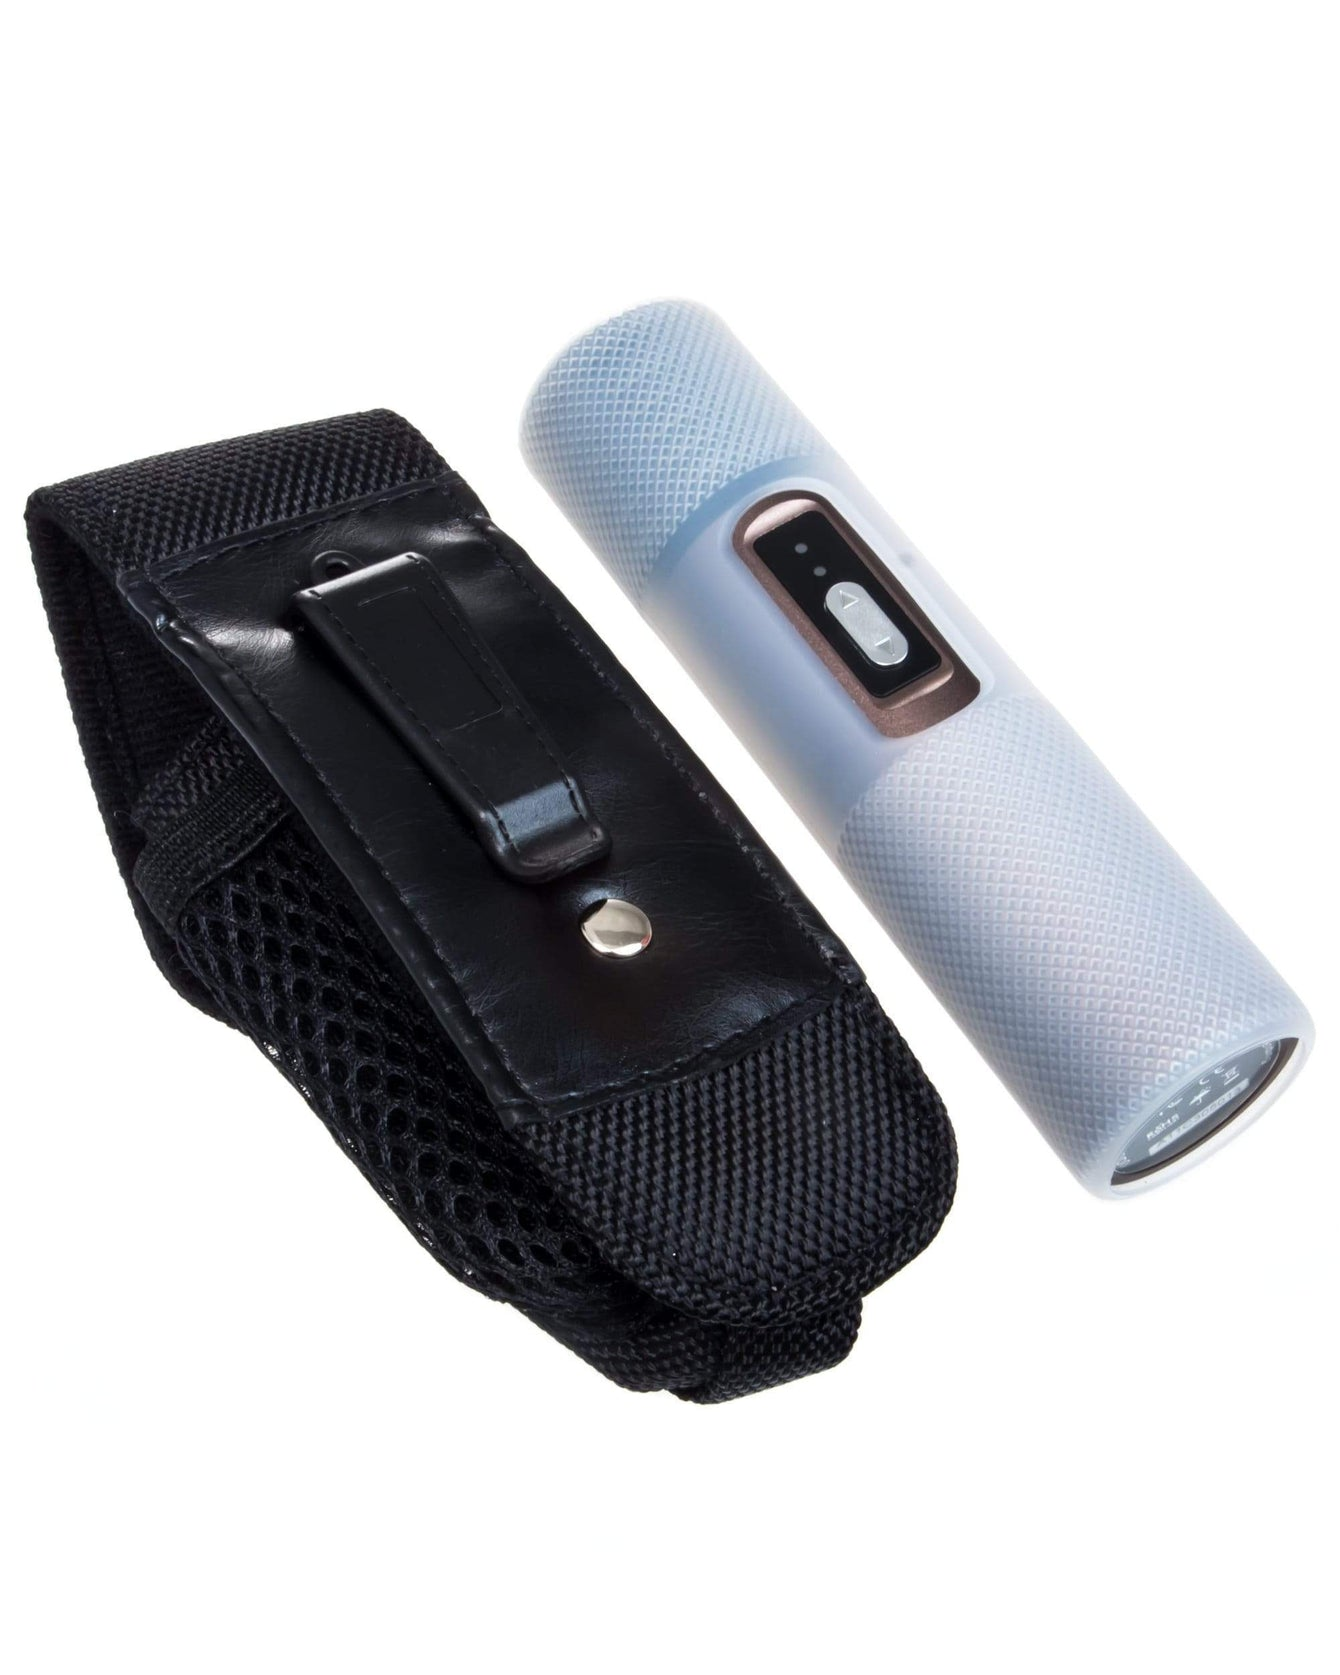 Arizer - Air Portable Vaporizer